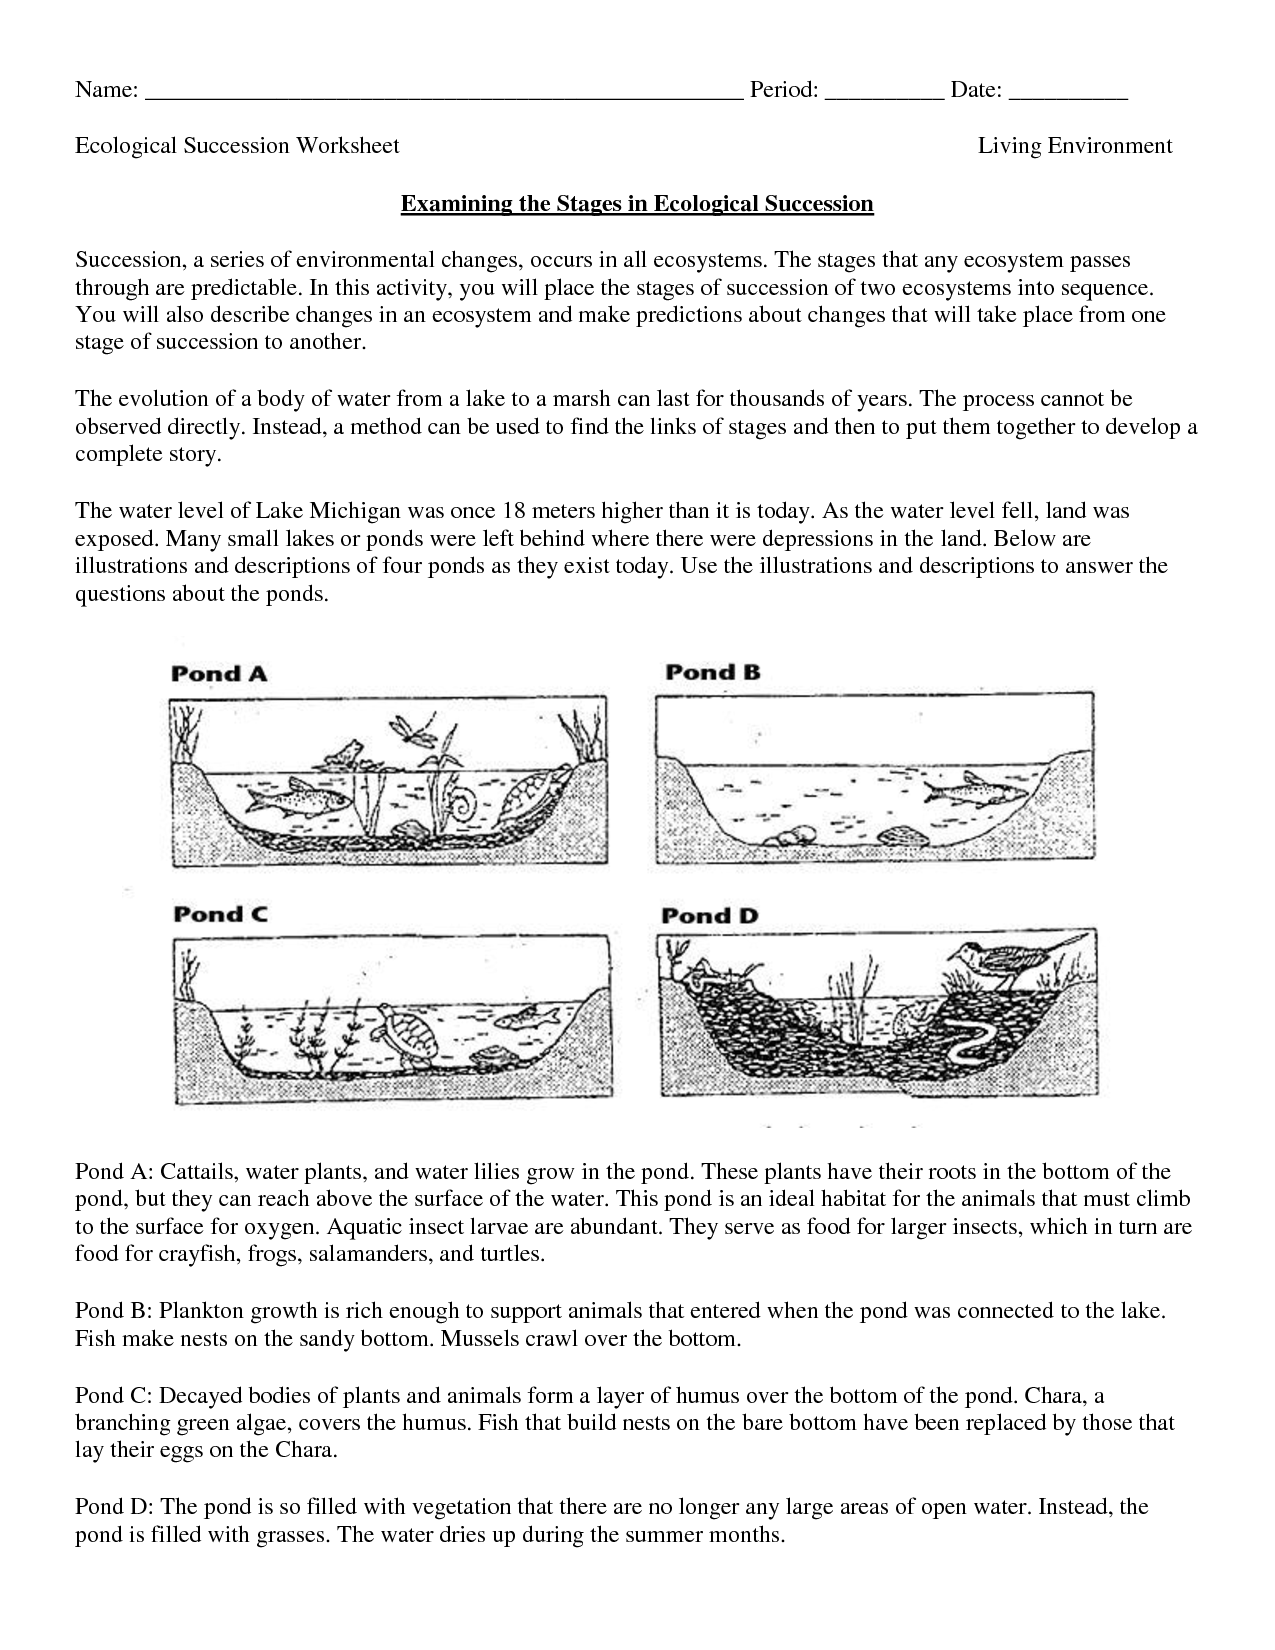 Ecological Succession Worksheet Answer Key : ecological, succession, worksheet, answer, Science, Worksheets, Ecosystem, Biology, Worksheet, Worksheet,, Worksheets,, Ecological, Succession